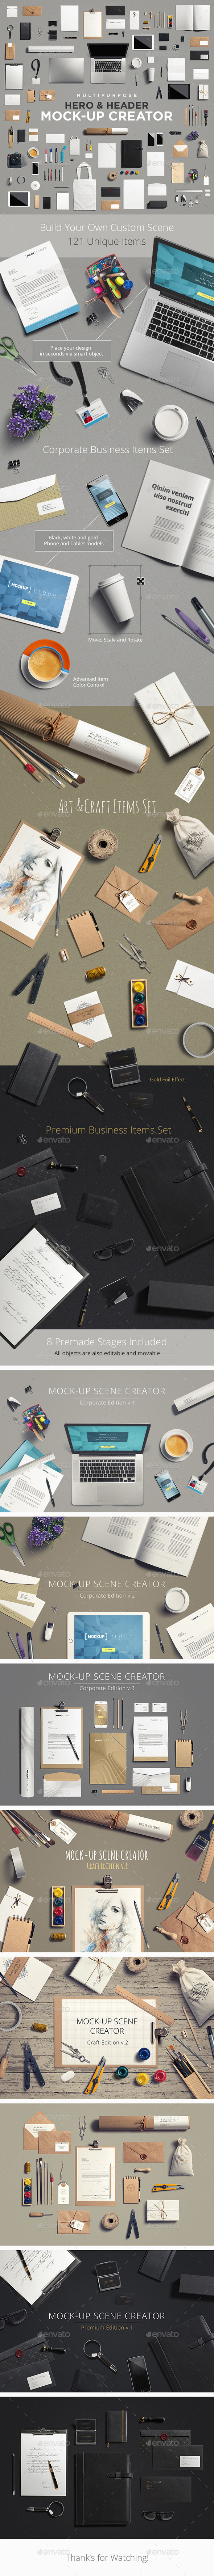 Multipurpose Mock-Up Creator - Hero Images Graphics